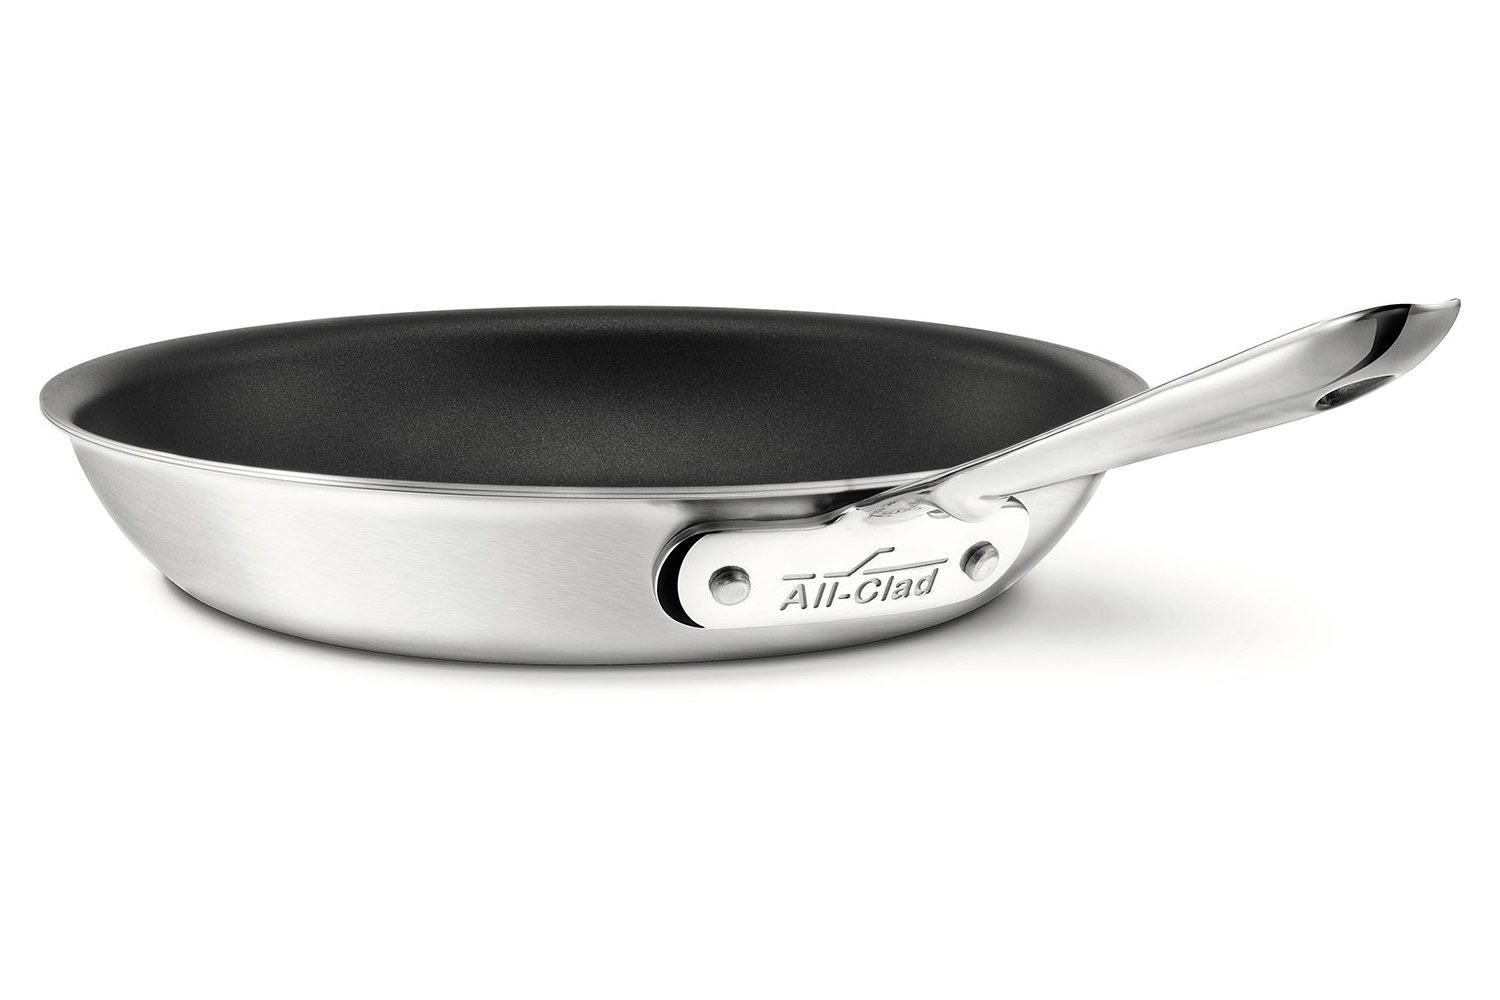 All-Clad d5 Brushed Stainless 8 inch Nonstick Fry Pan